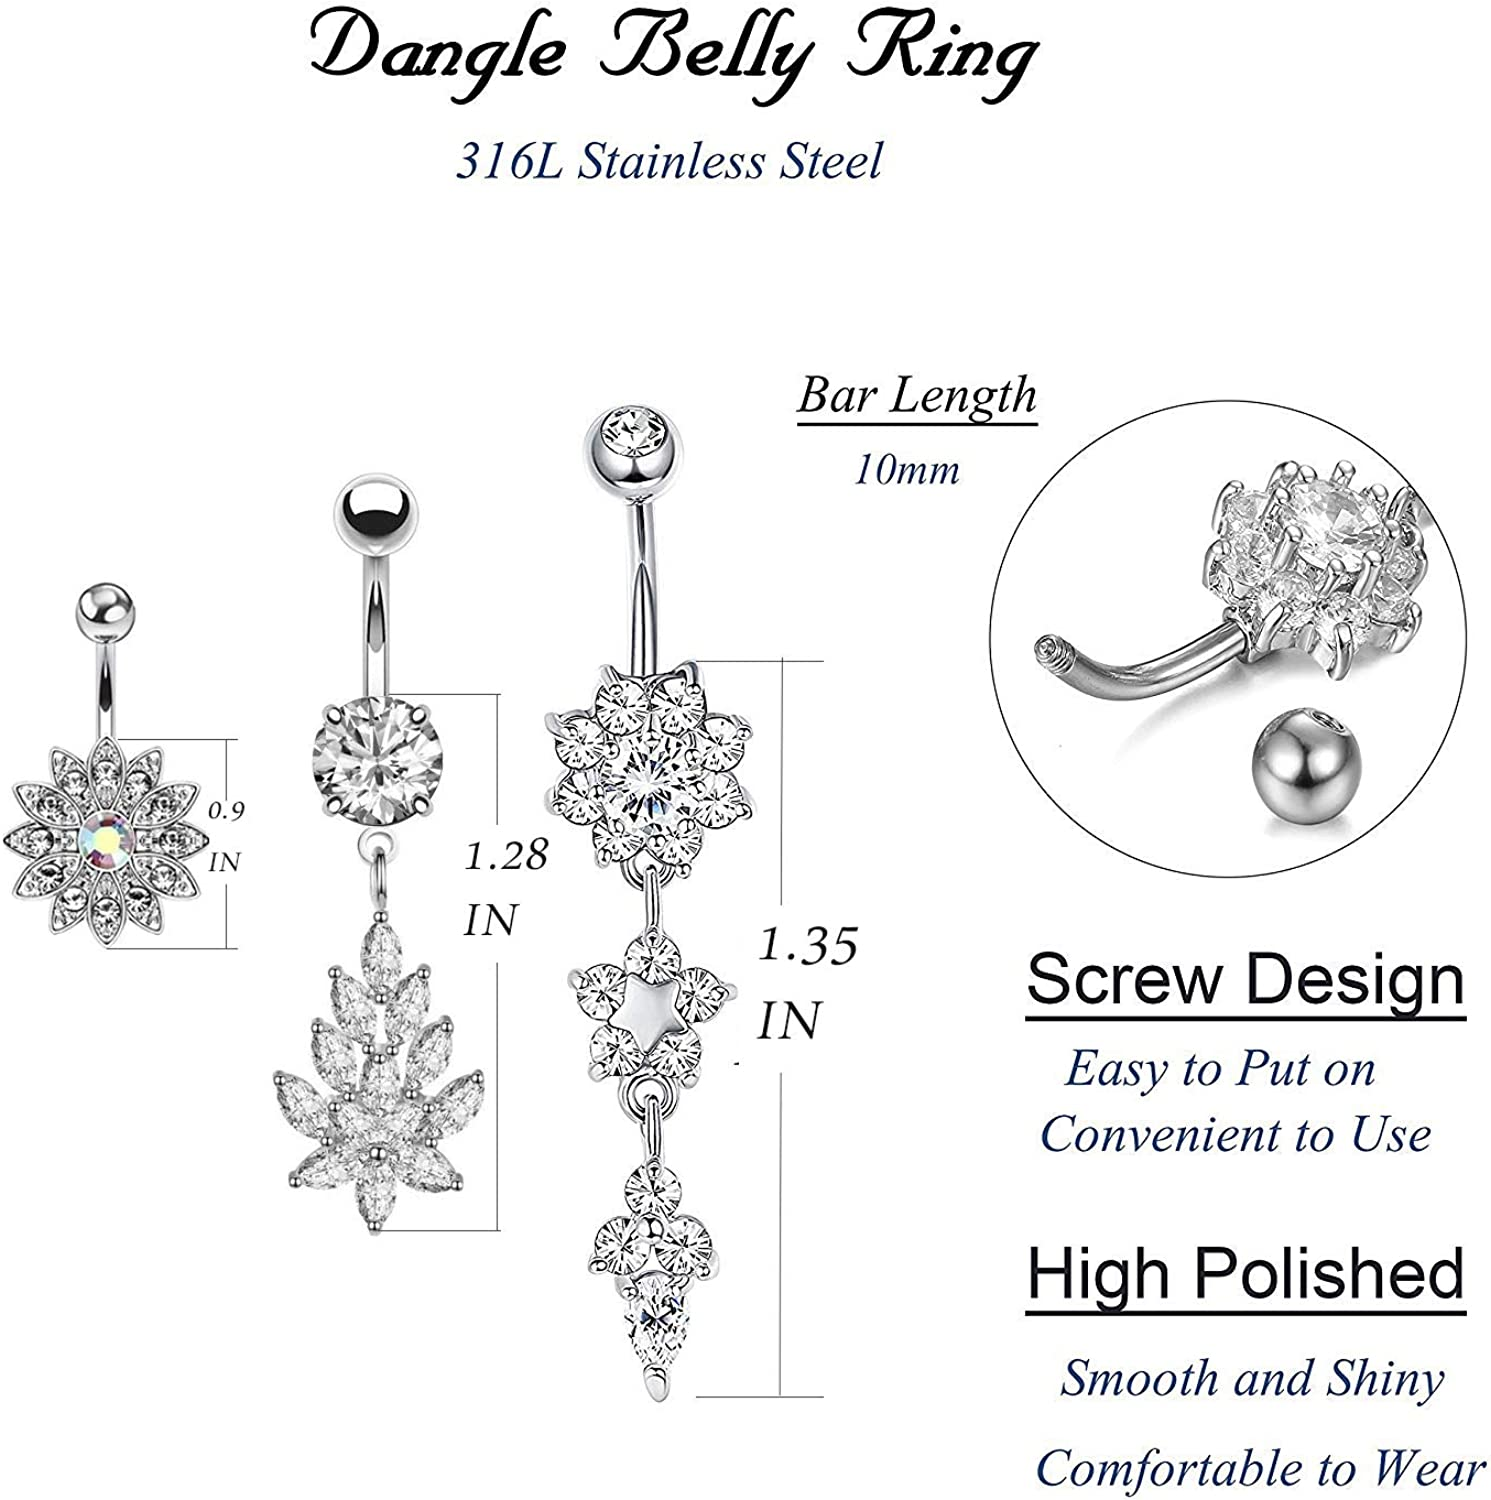 Tinblin 3-9PCS 14G Stainless Steel Belly Button Rings CZ Inlaid Dangle Navel Ring Body Piercing Jewelry…